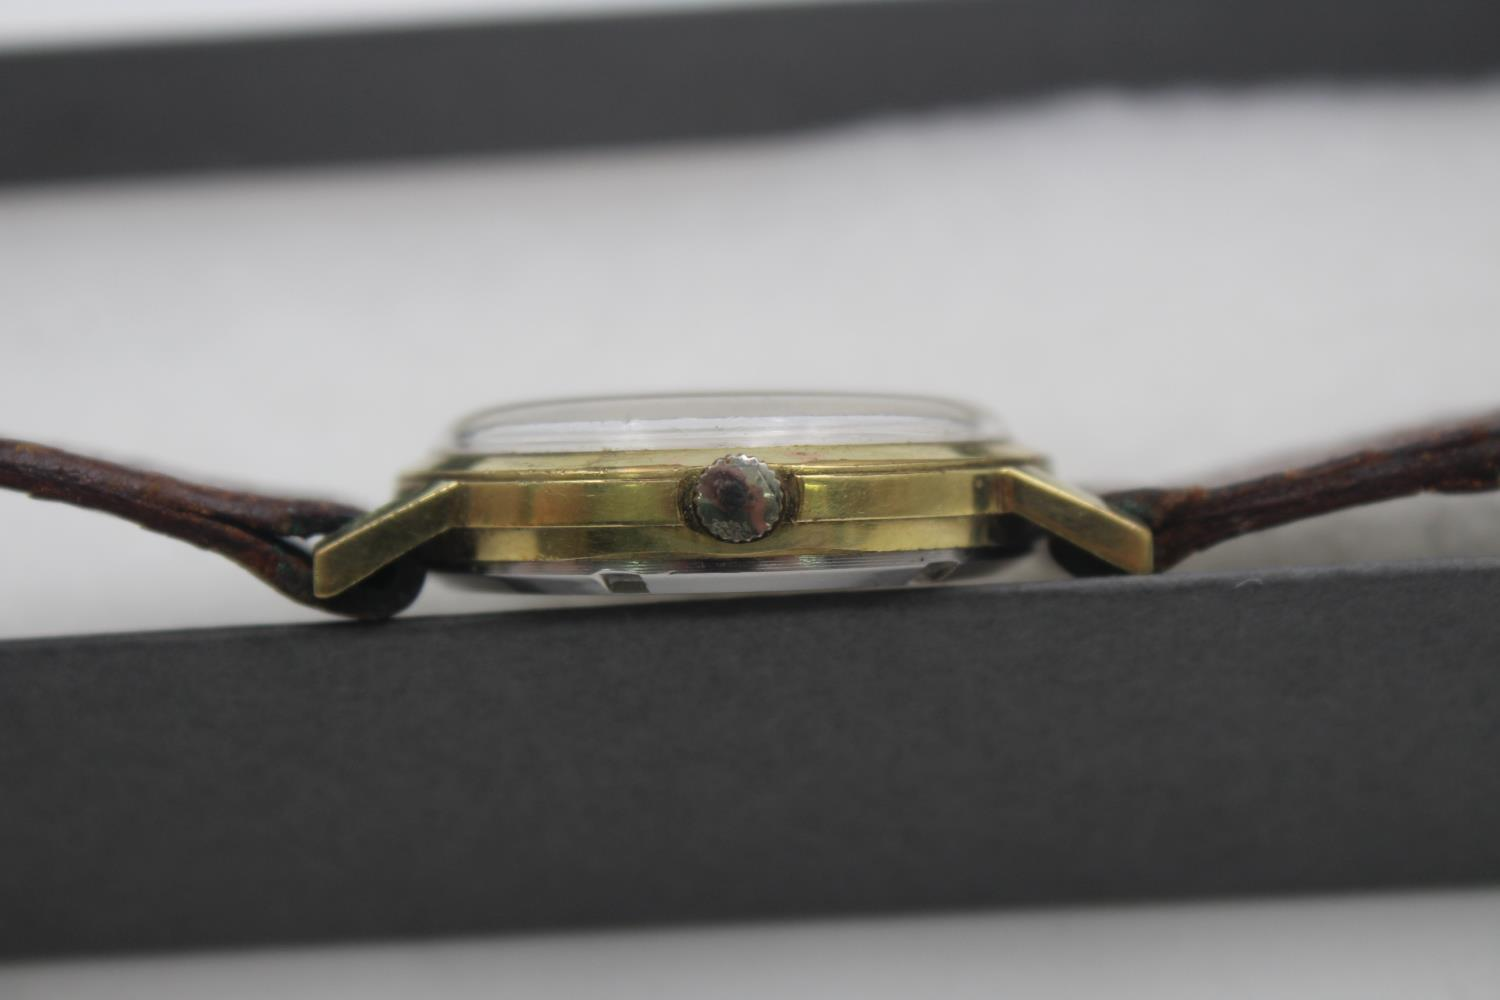 Vintage Gents BAUME Gold Tone WRISTWATCH Hand-Wind - Image 4 of 4